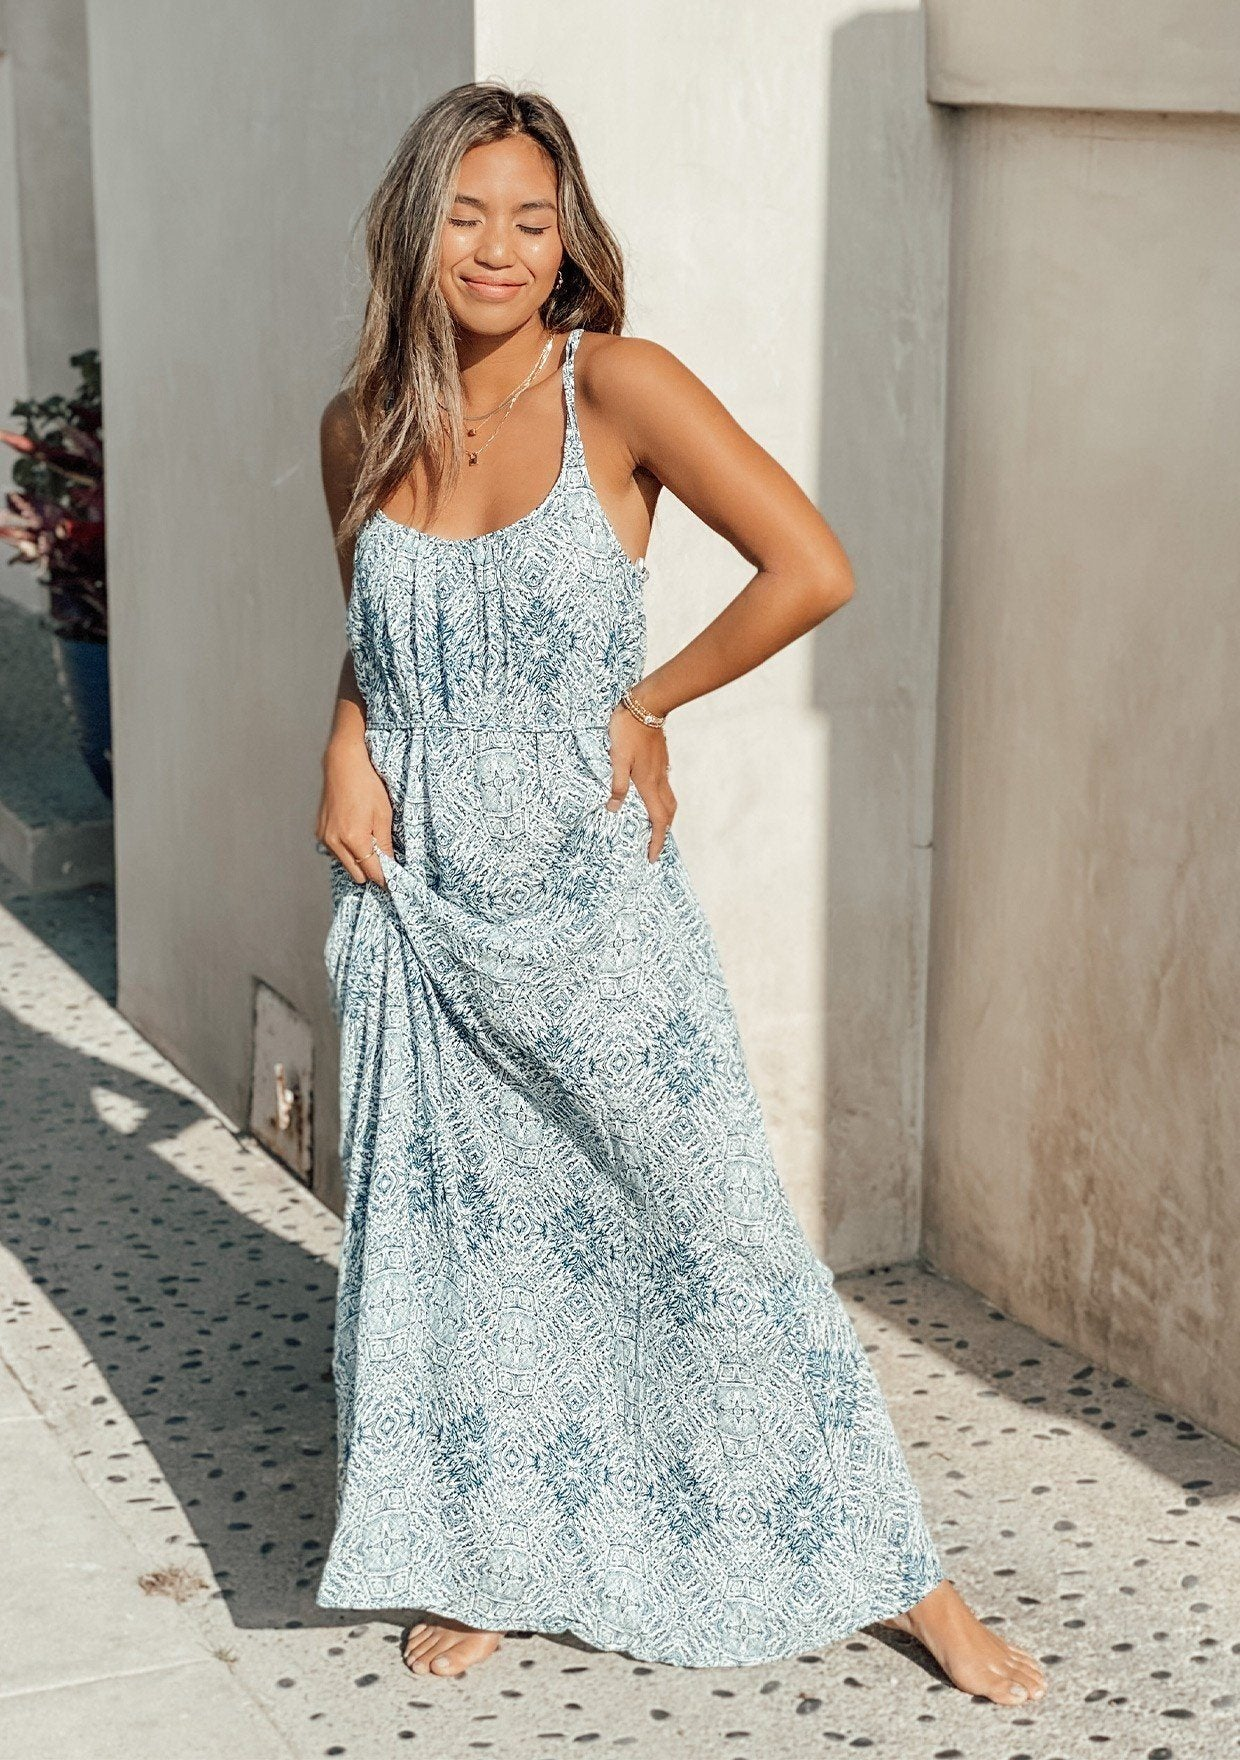 [Color: Ocean/Natural] A printed spaghetti strap flowy maxi dress.